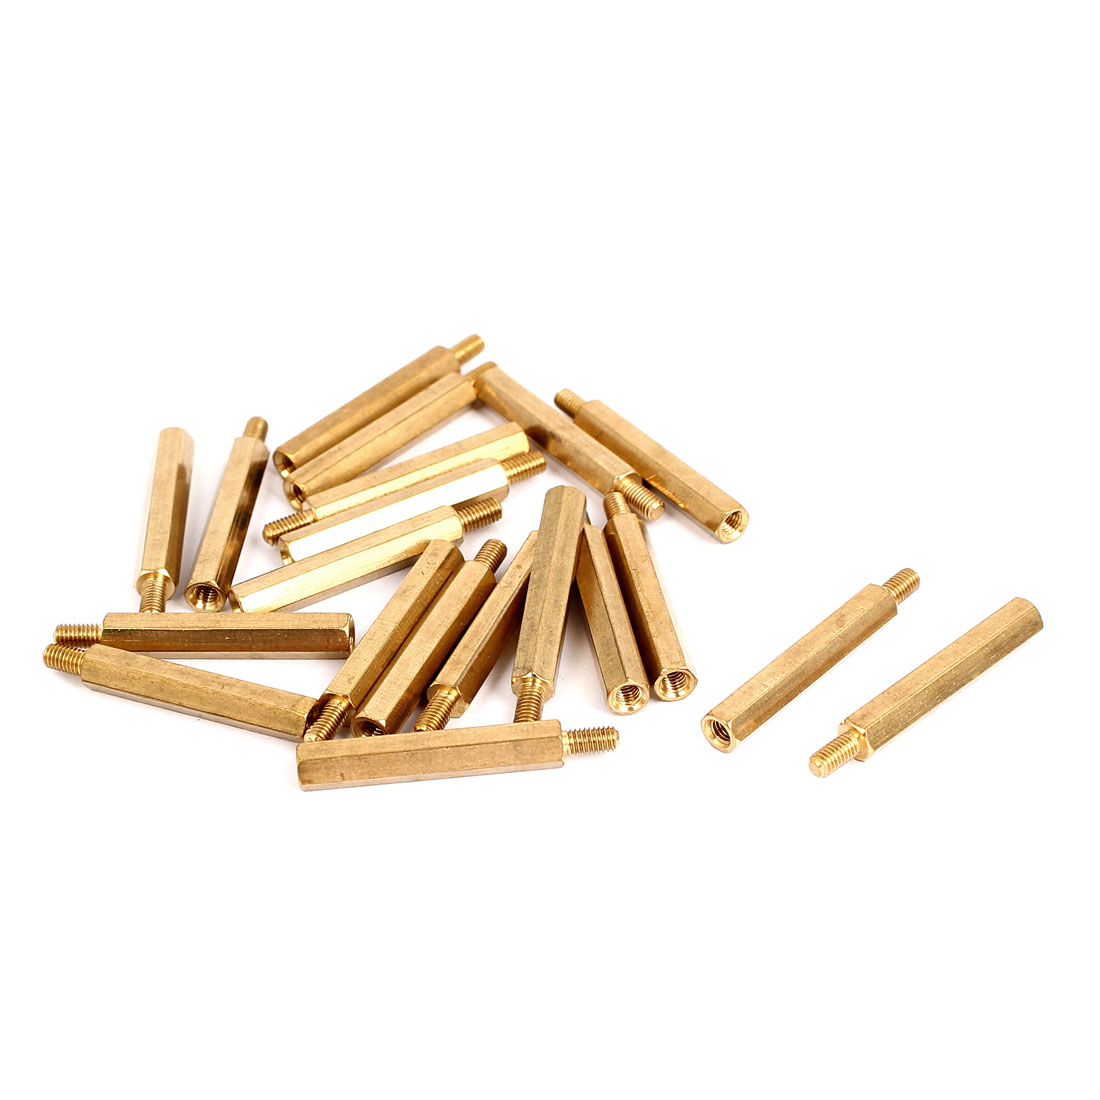 M3 Male/Female Thread Brass Hexagonal PCB Spacer Standoff Support 28mm+6mm 20pcs